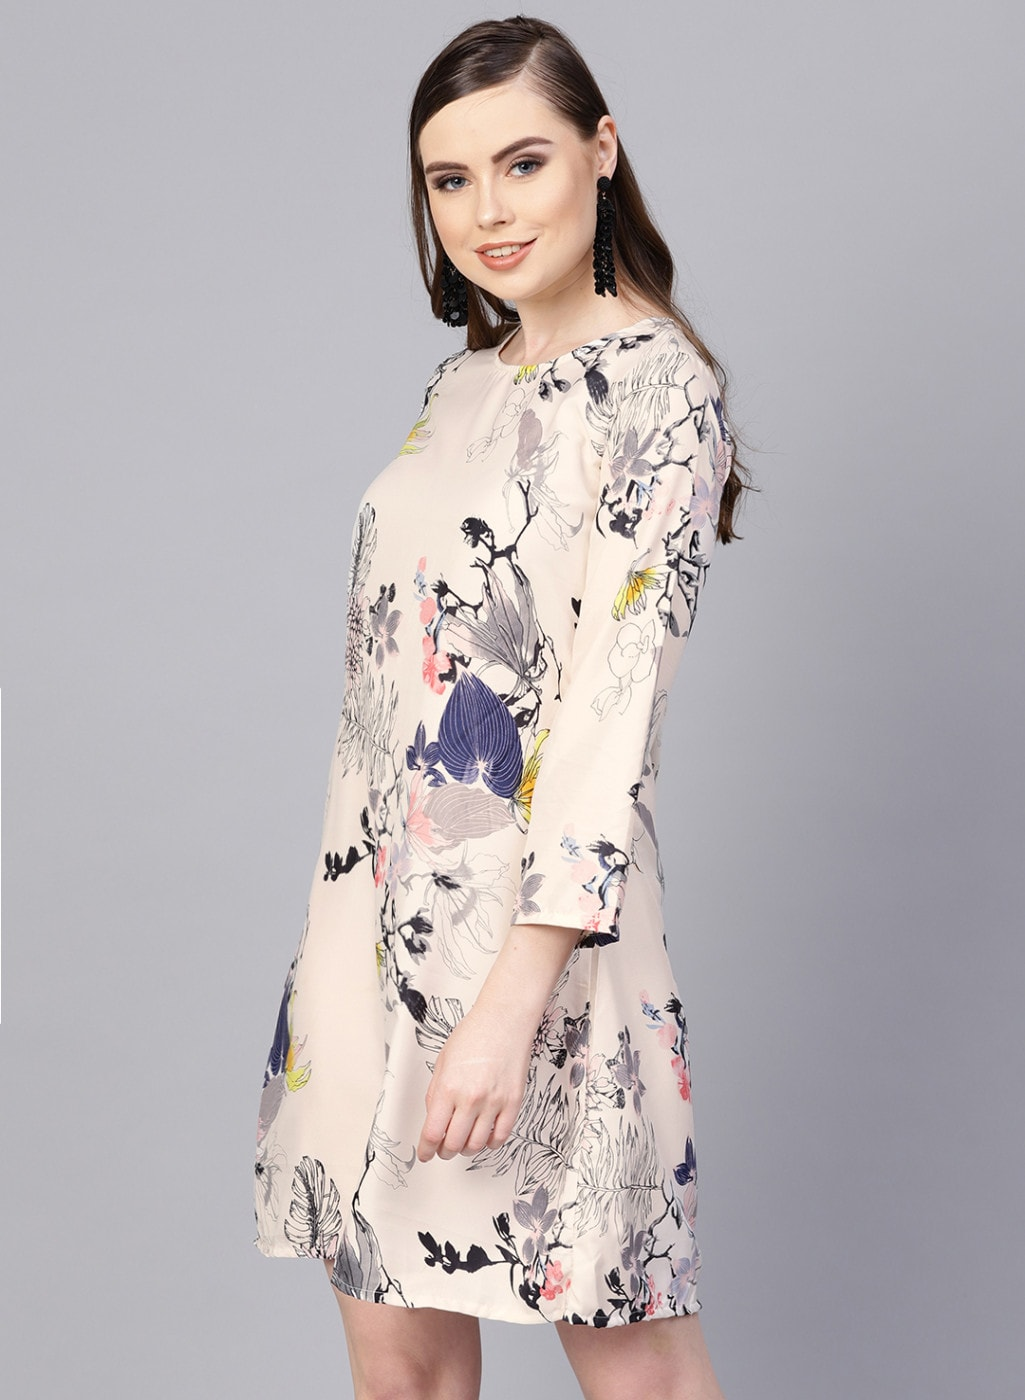 191541fce Aasi Dresses - Buy Aasi Dresses online in India - Jabong